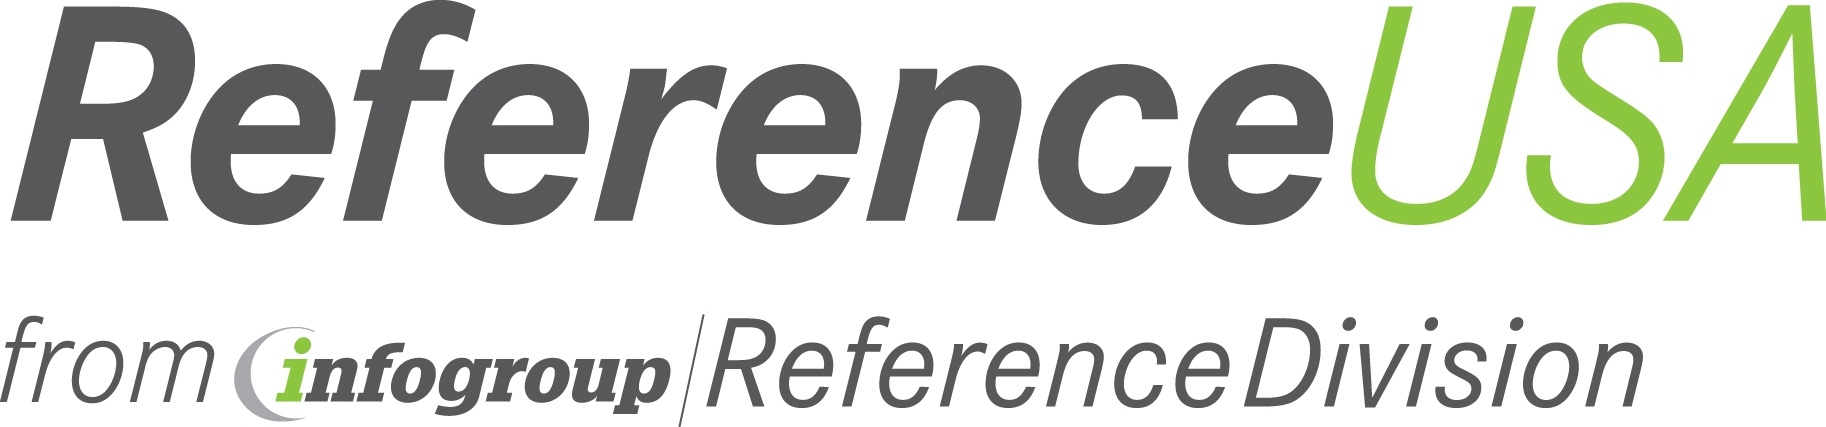 The number 1 source of information on businesses and people for small business owners, marketing professionals, researchers and job seekers.  ReferenceUSA helps user create marketing plans, conduct competitive analysis, raise funds and locate people.